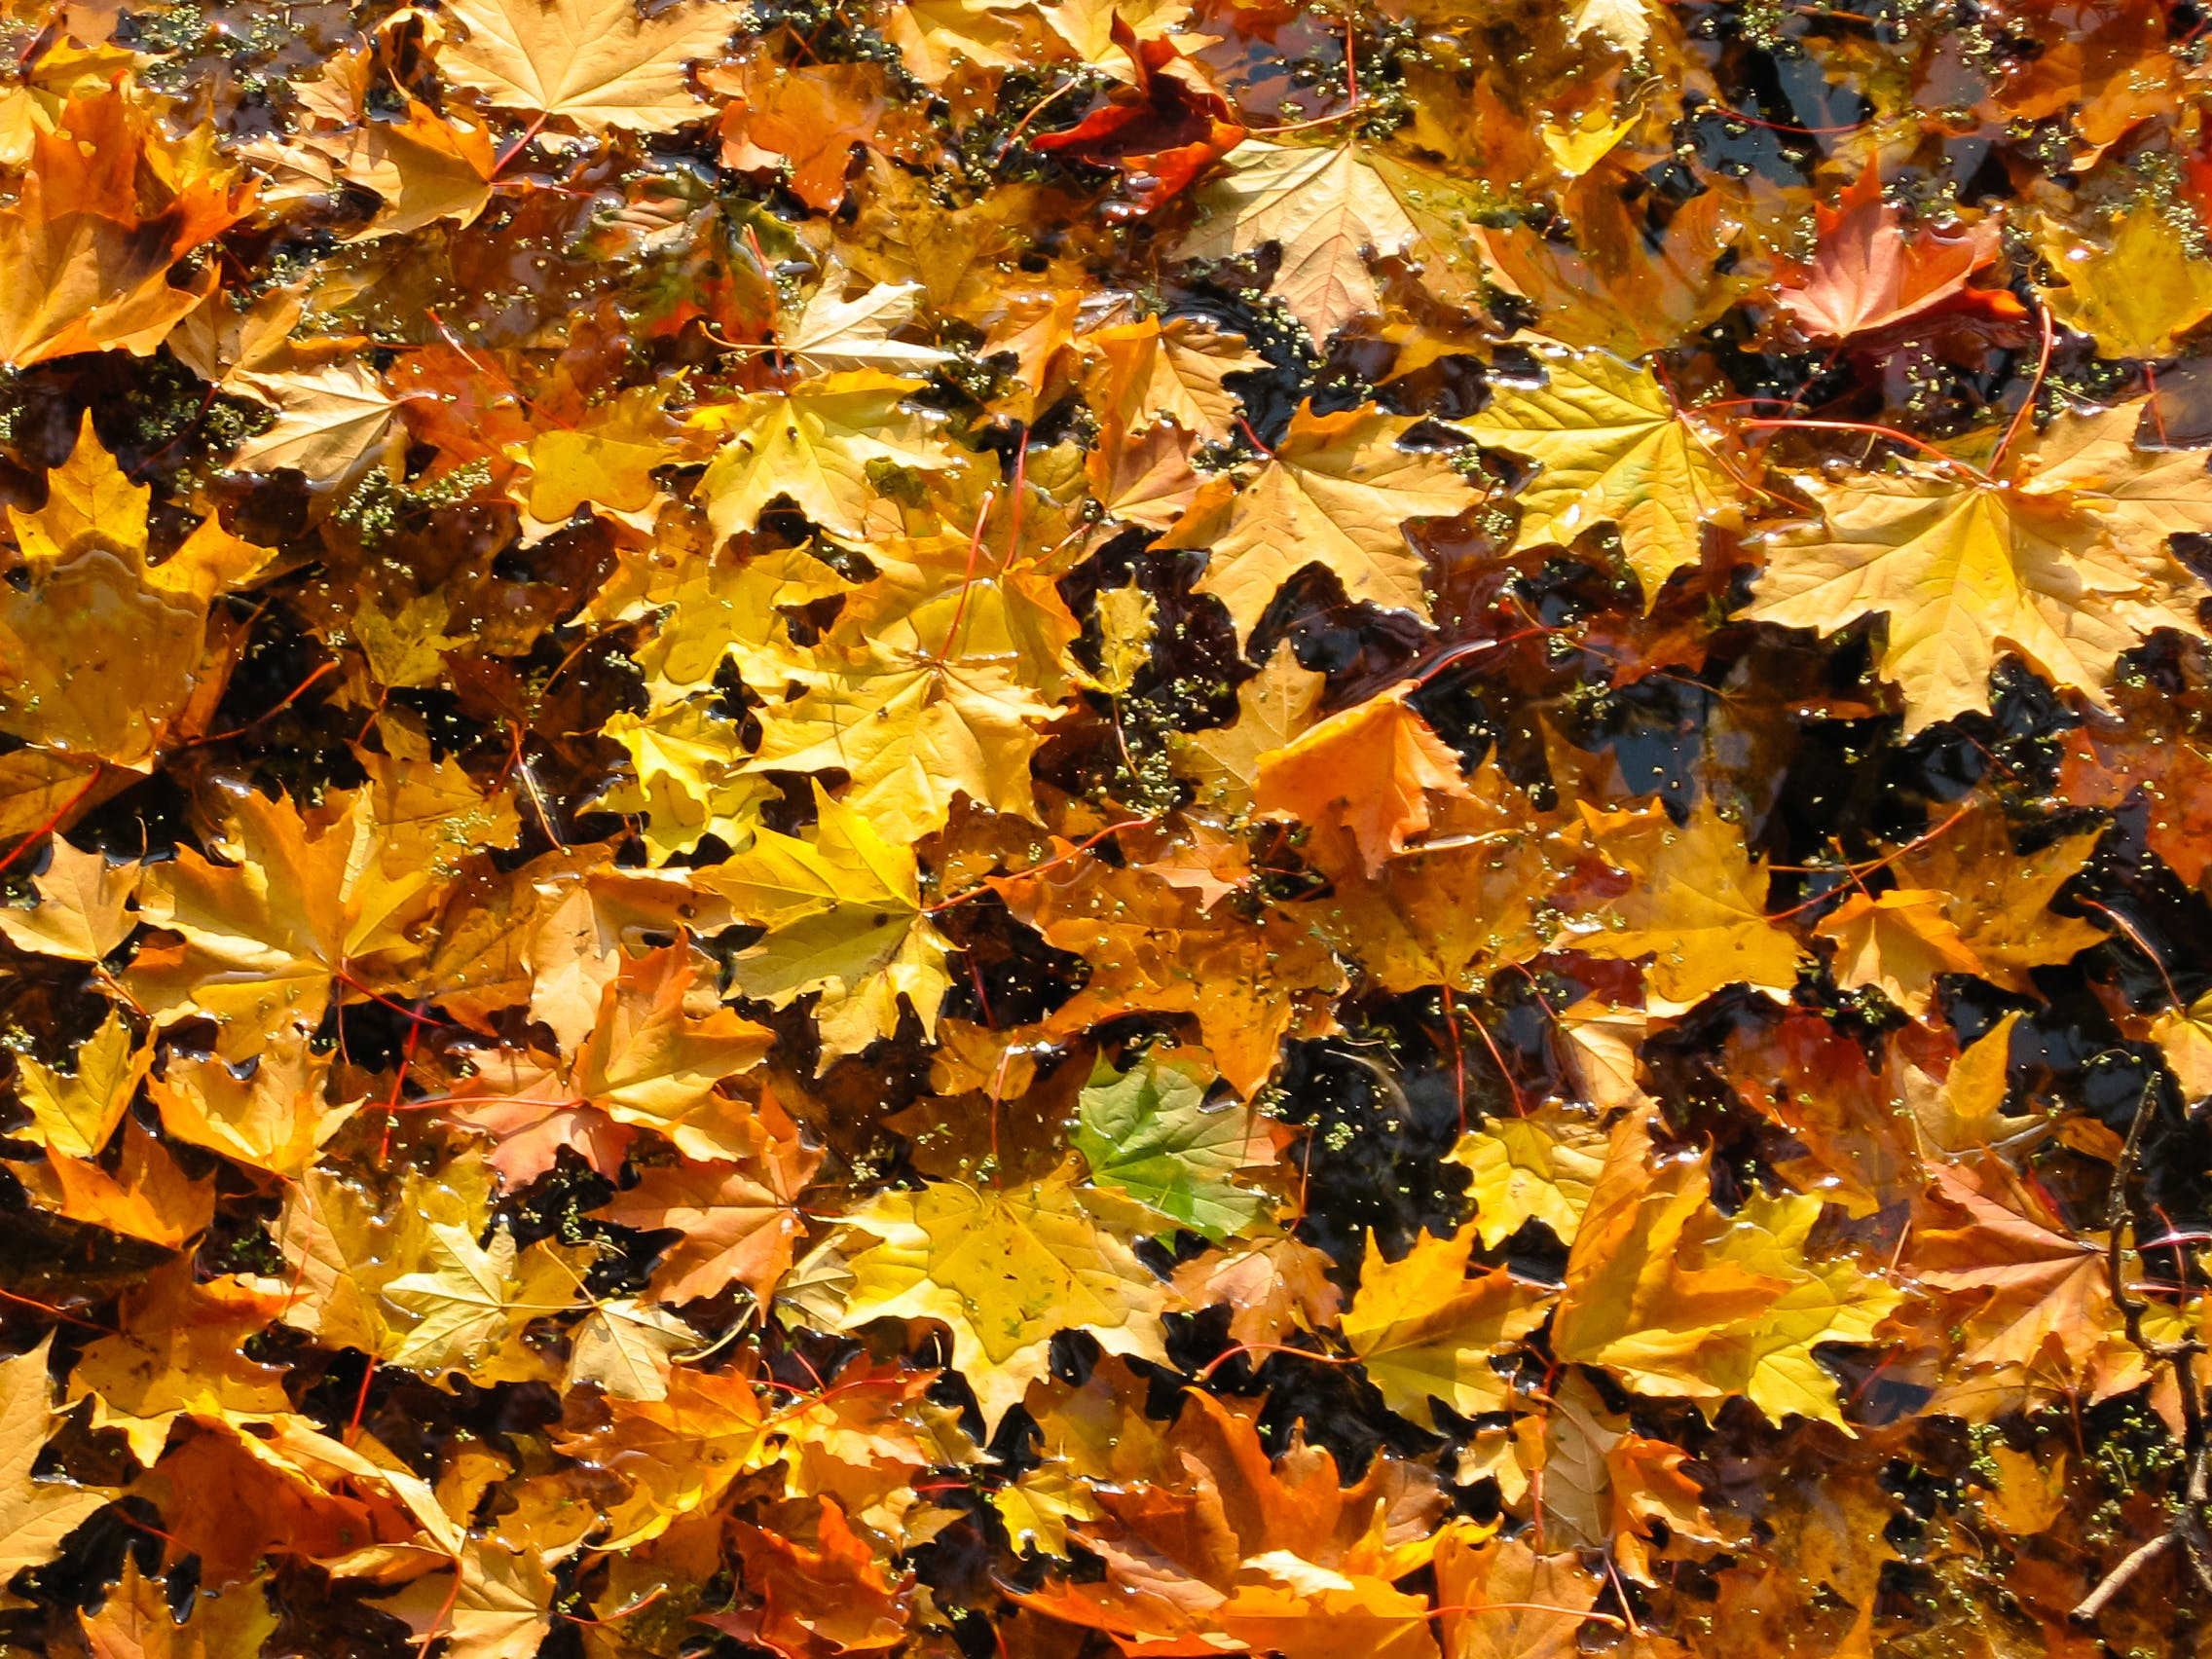 Yellow and Orange Maple Leaves Flat Lay Photograph